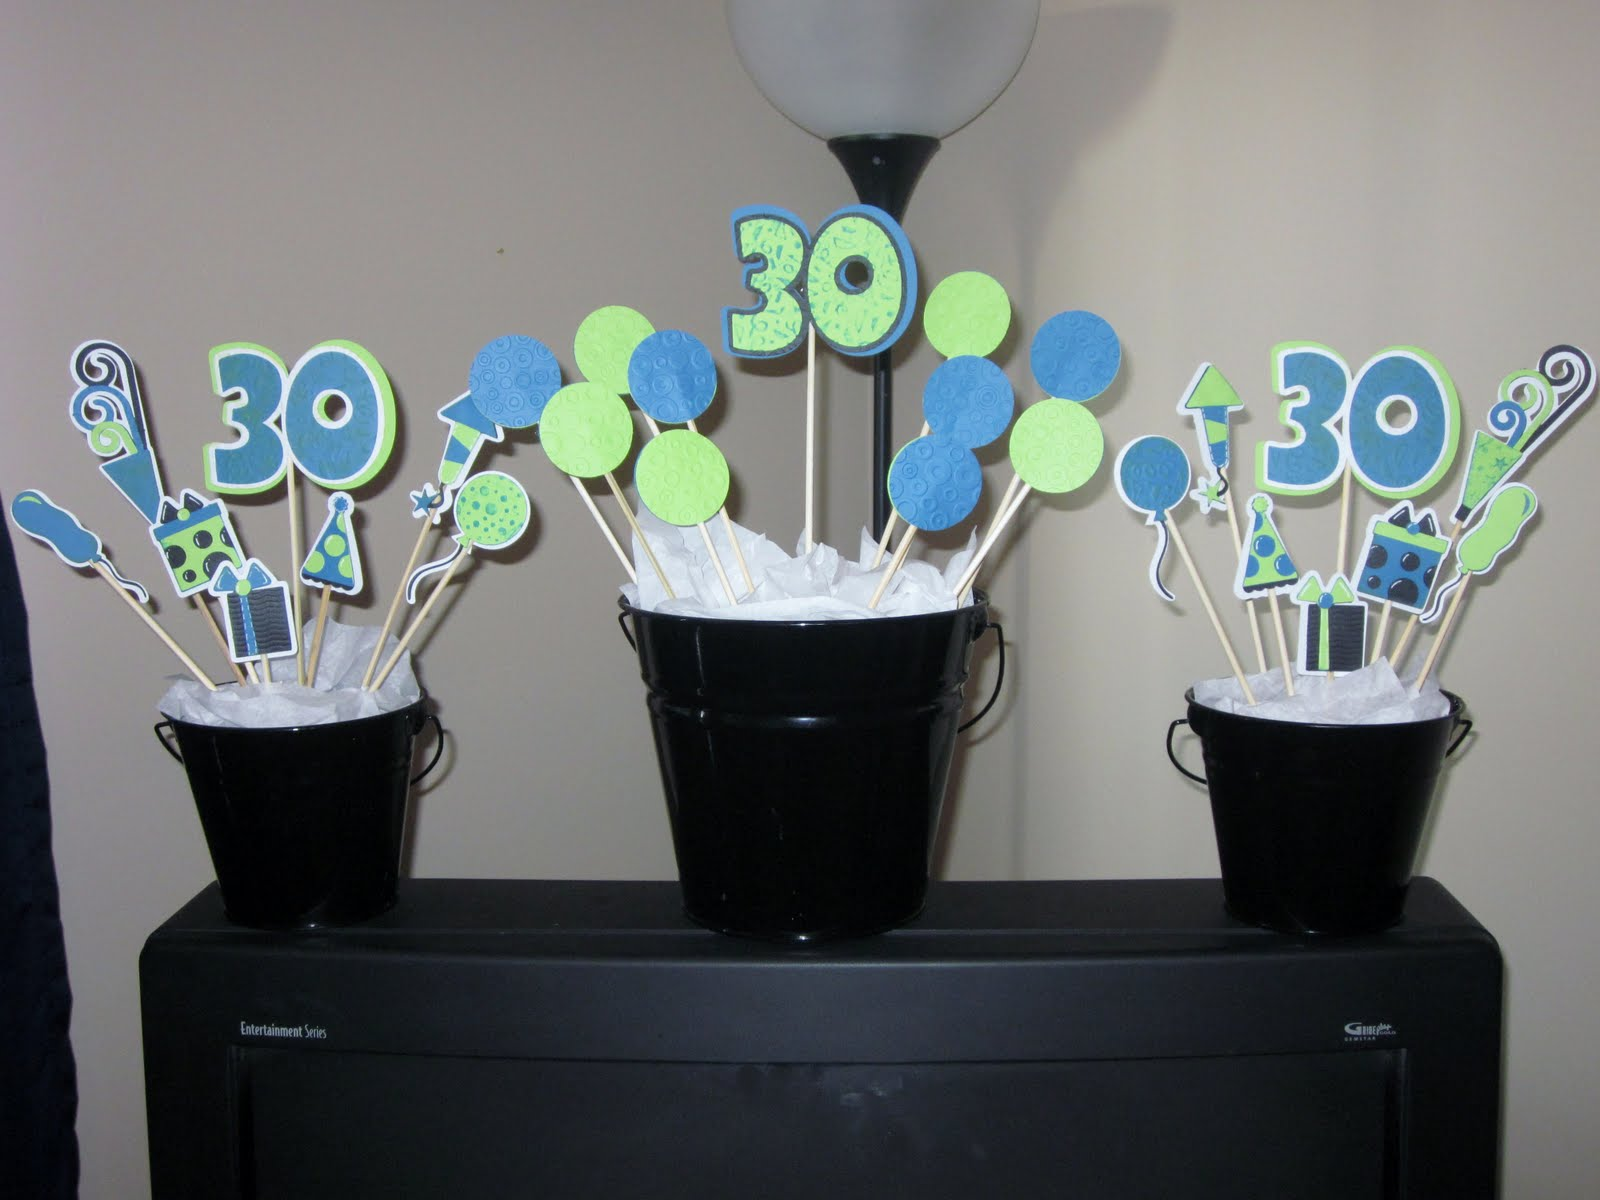 Jamiek711 designs 30th birthday decorations for 30th birthday decoration ideas for her